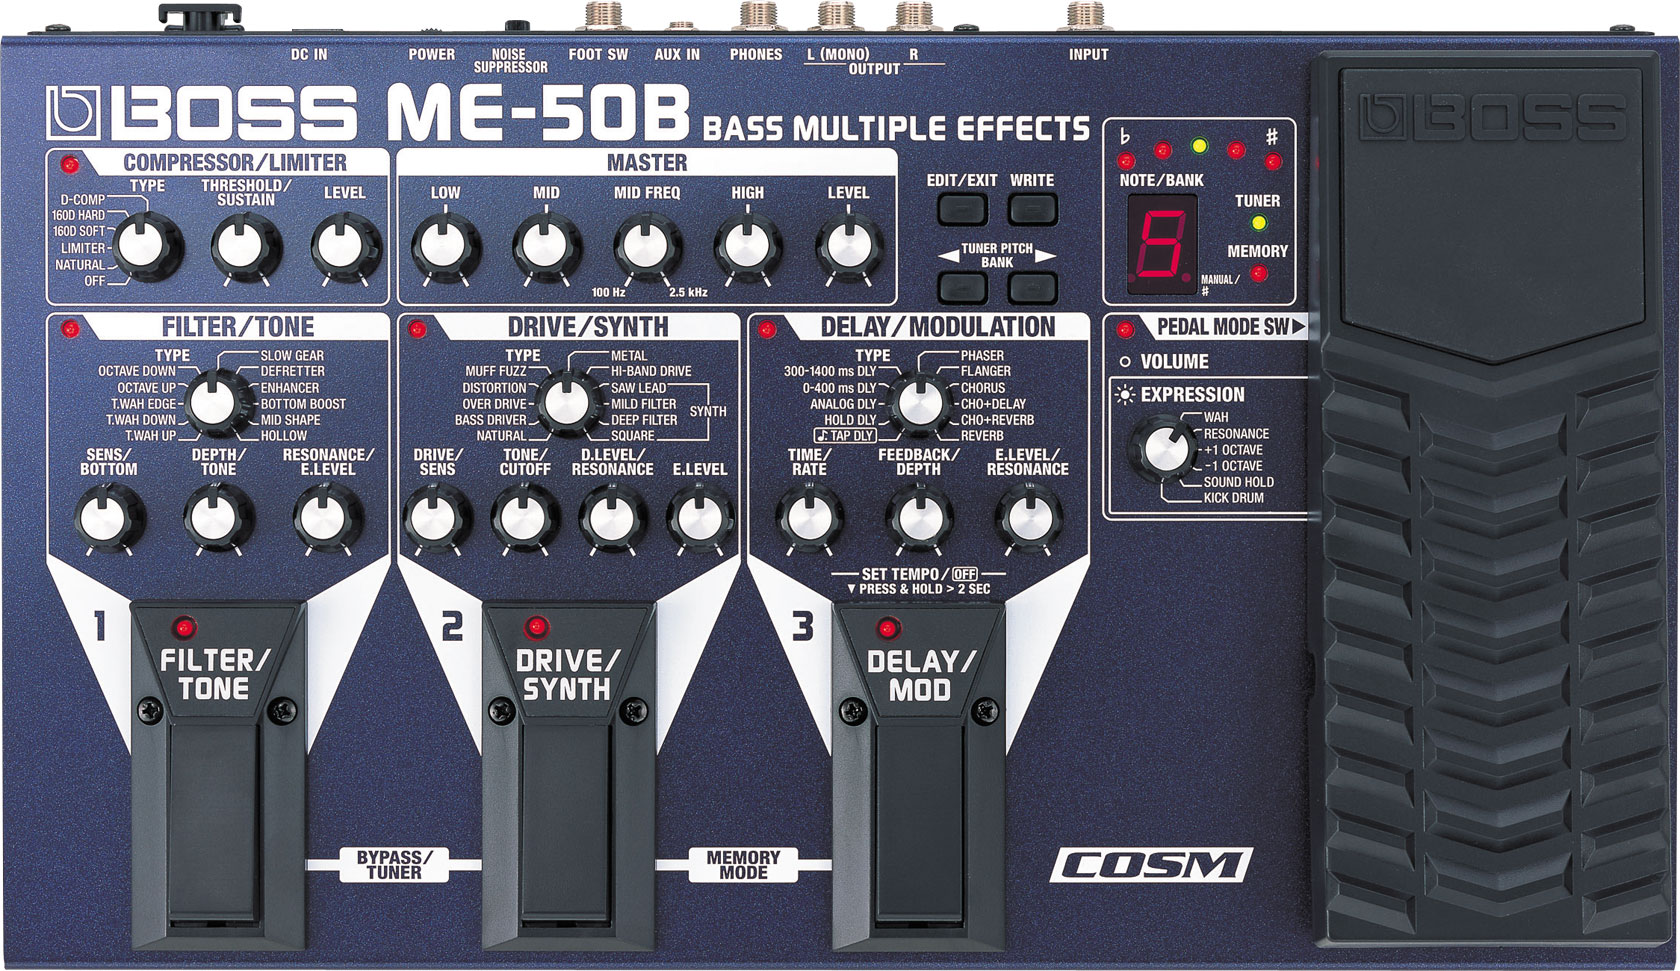 boss me 50b bass multiple effects rh boss info manual de pedalera boss me-50 en español manual de pedal boss me-50